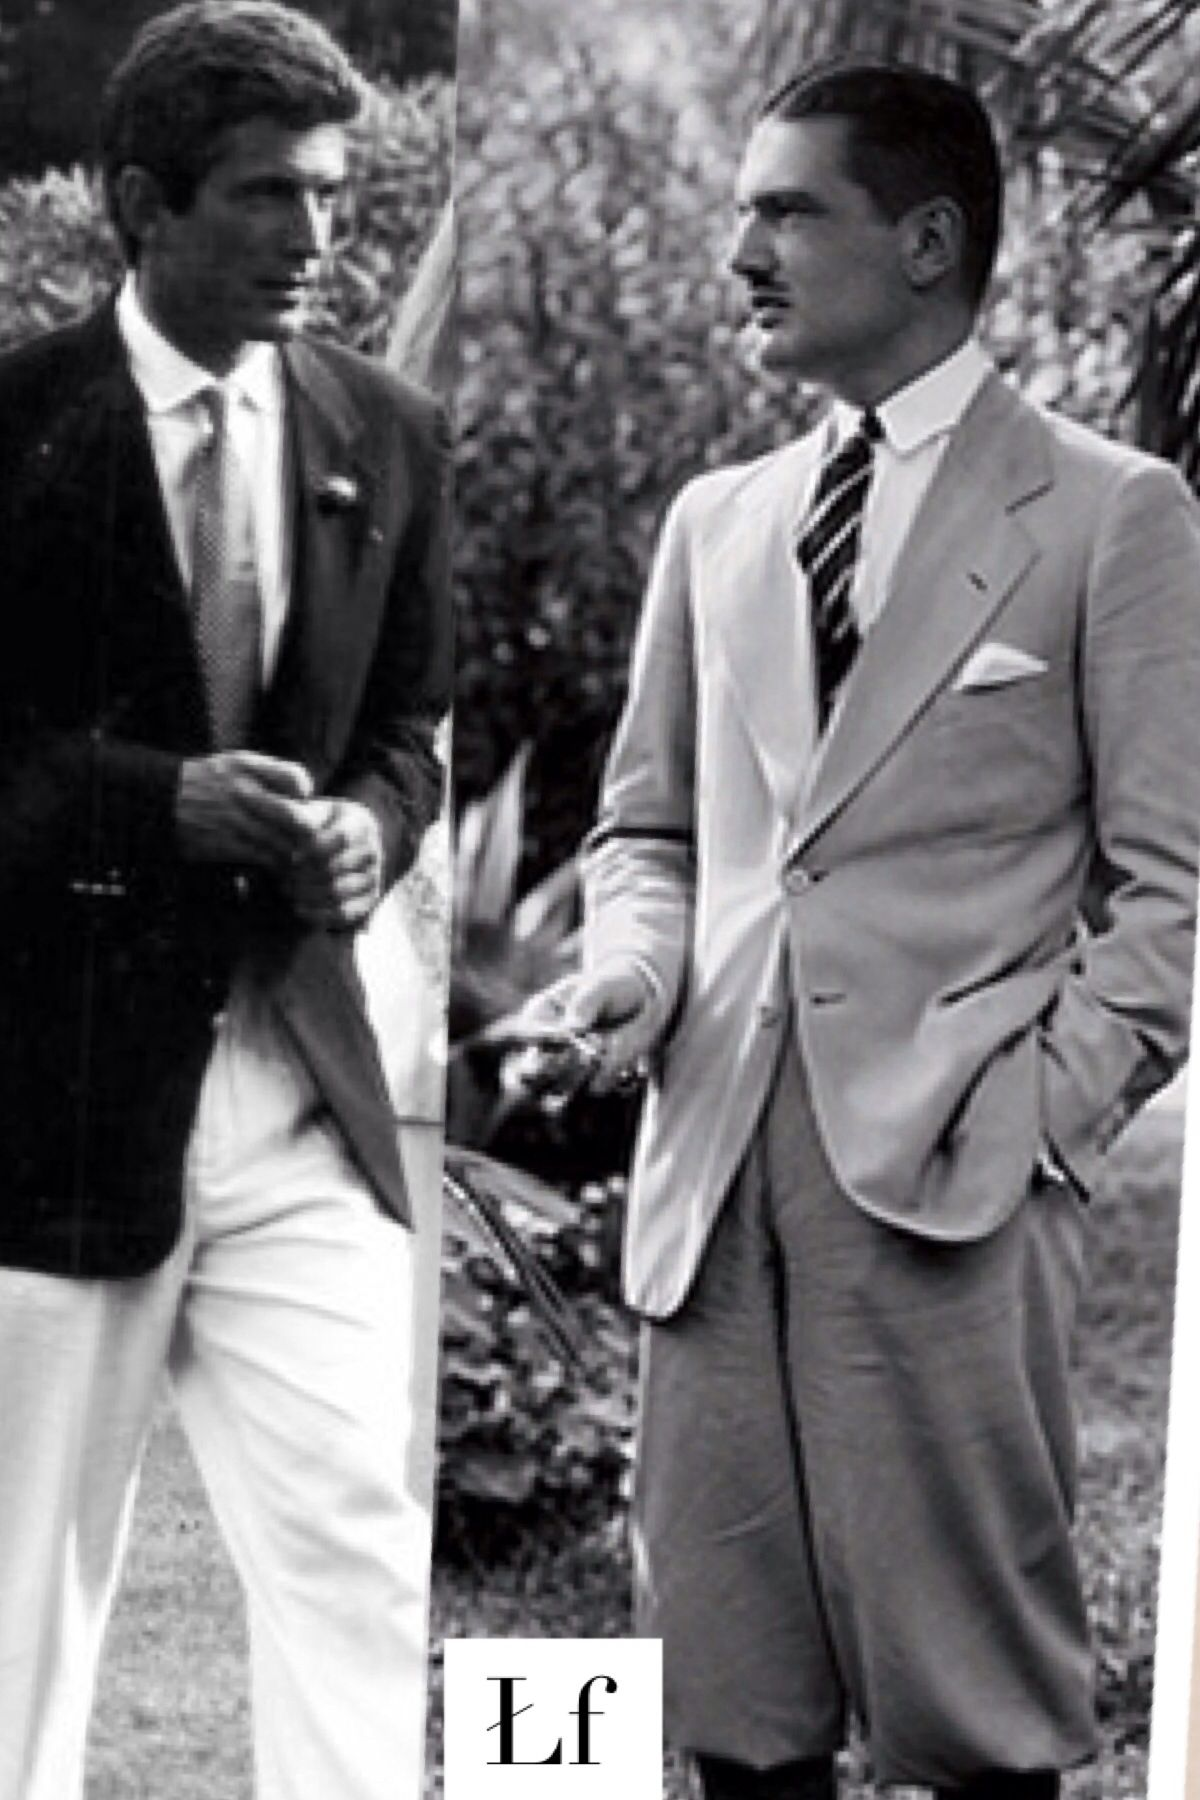 My vision of John Kennedy Jr. on July 17th 1999. With Black Jack Bouvier, father of Jacqueline Bouvier Kennedy Onassis